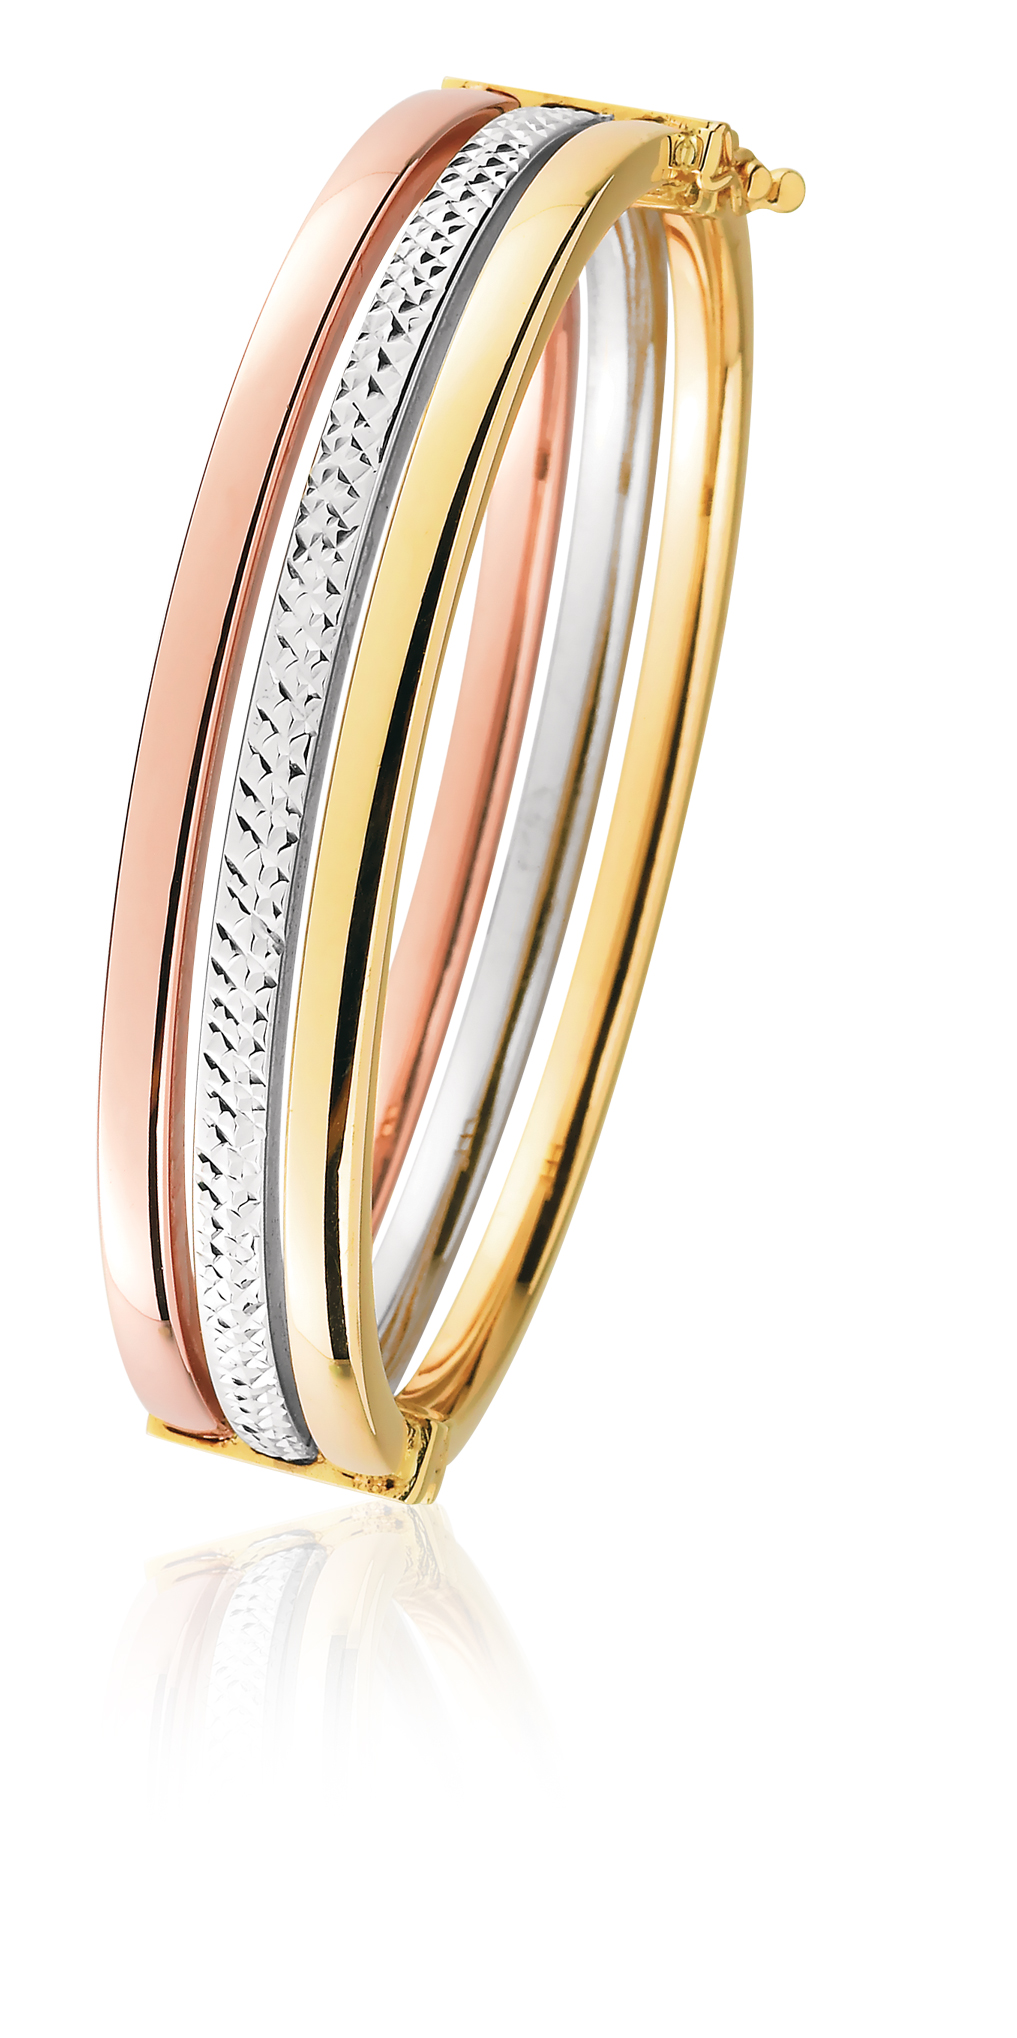 9ct Yellow Gold, White Gold & Rose Gold Bangle